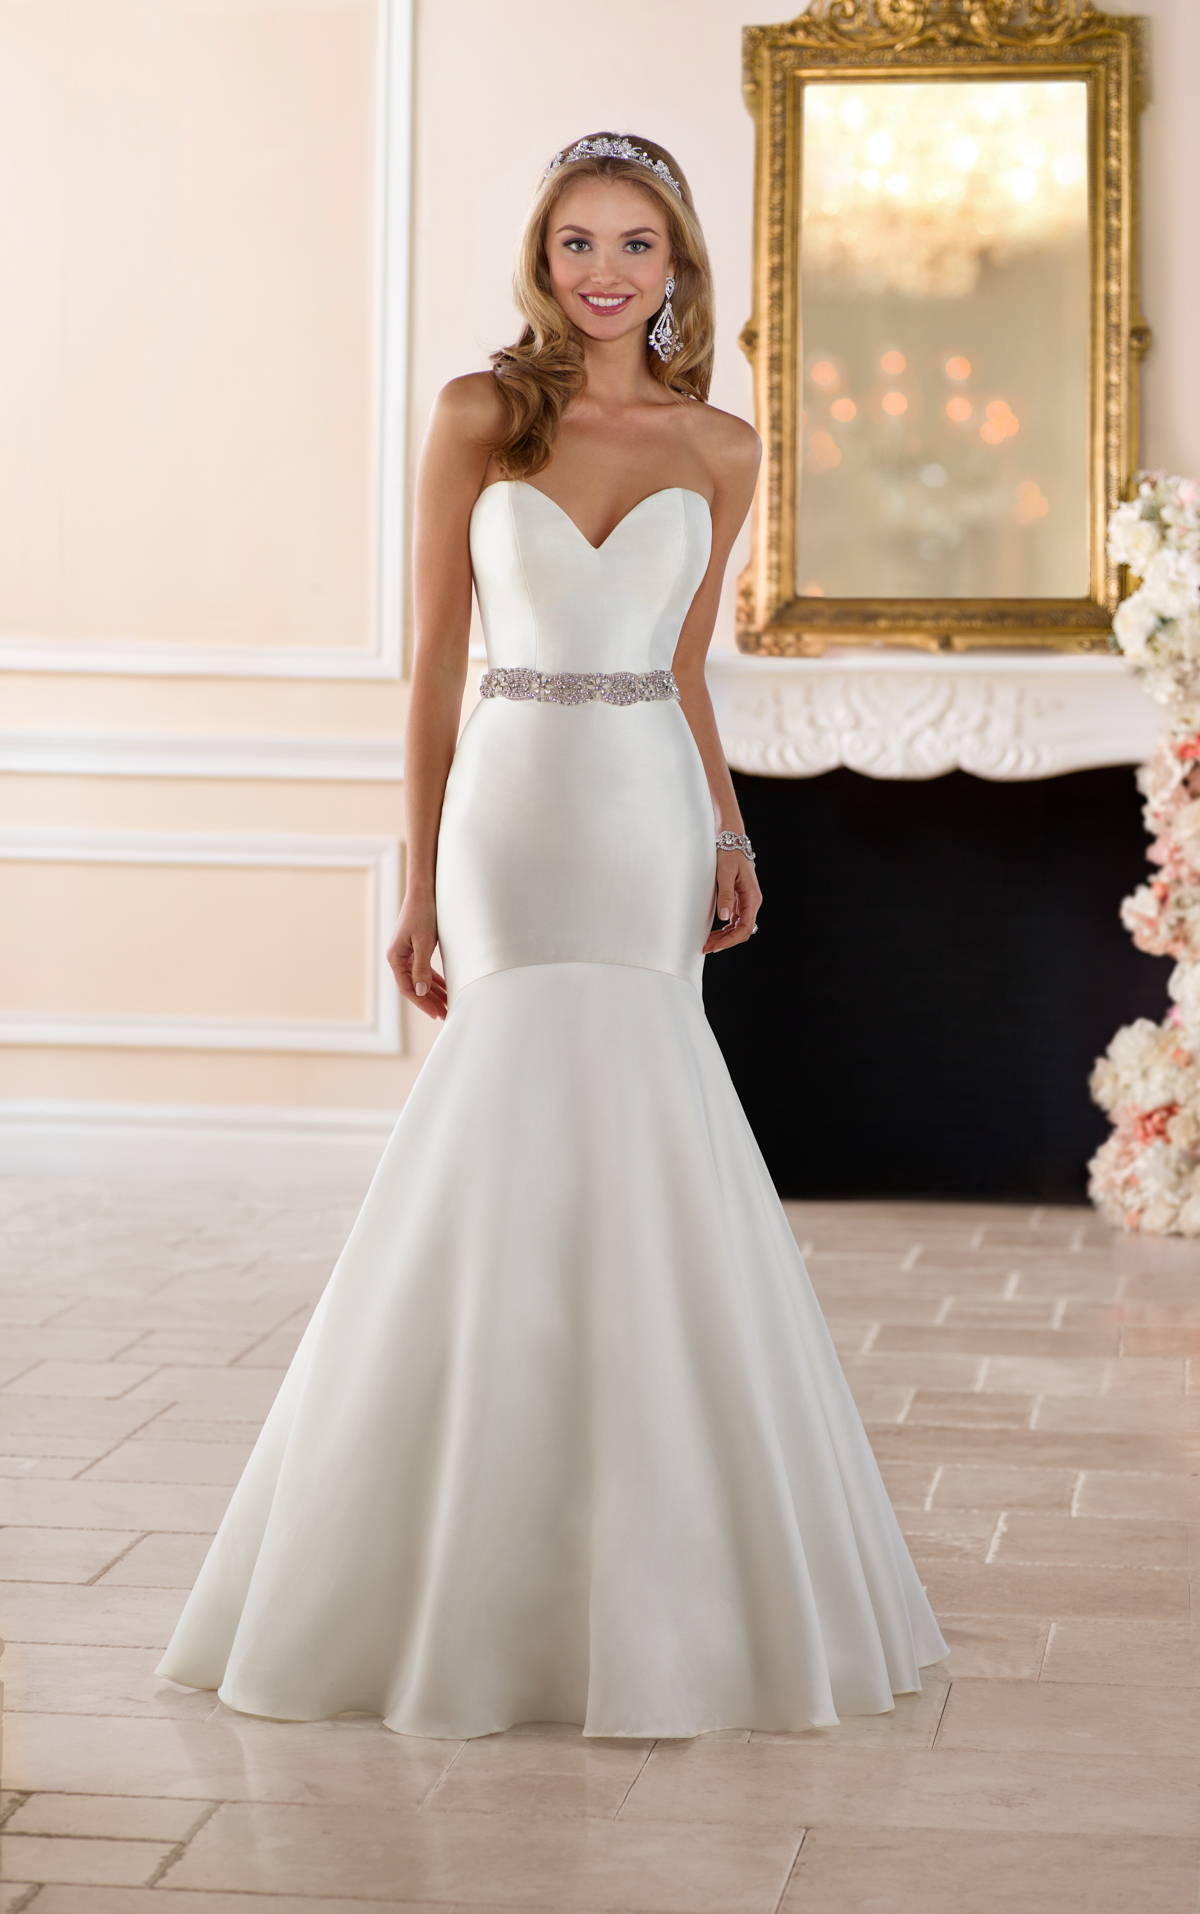 - This dropped waist fit-and-flare wedding dress is modern and elegant. The clean lines and mikado fabric make this simple wedding dress with a sweetheart neckline figure flattering.